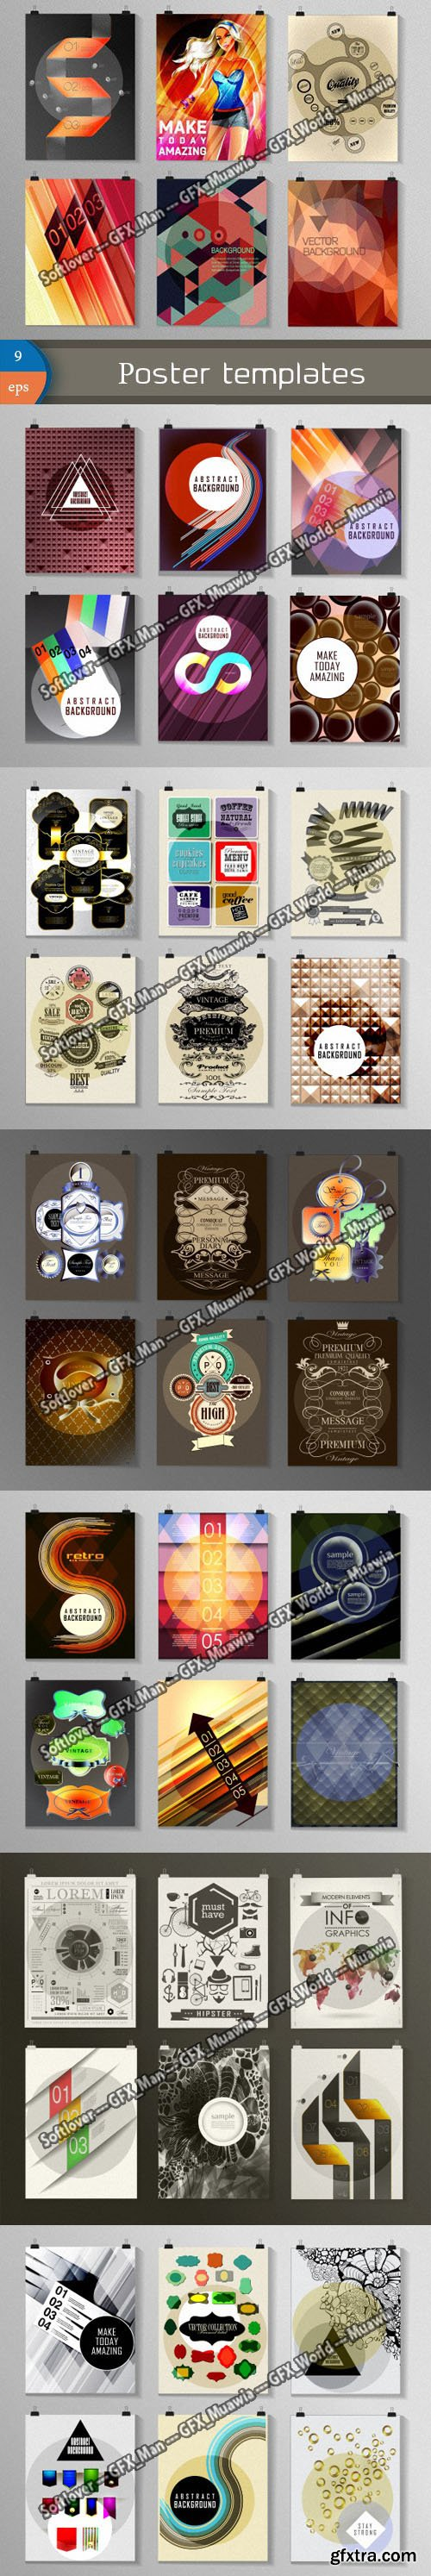 56 Poster Templates Collection in Vector